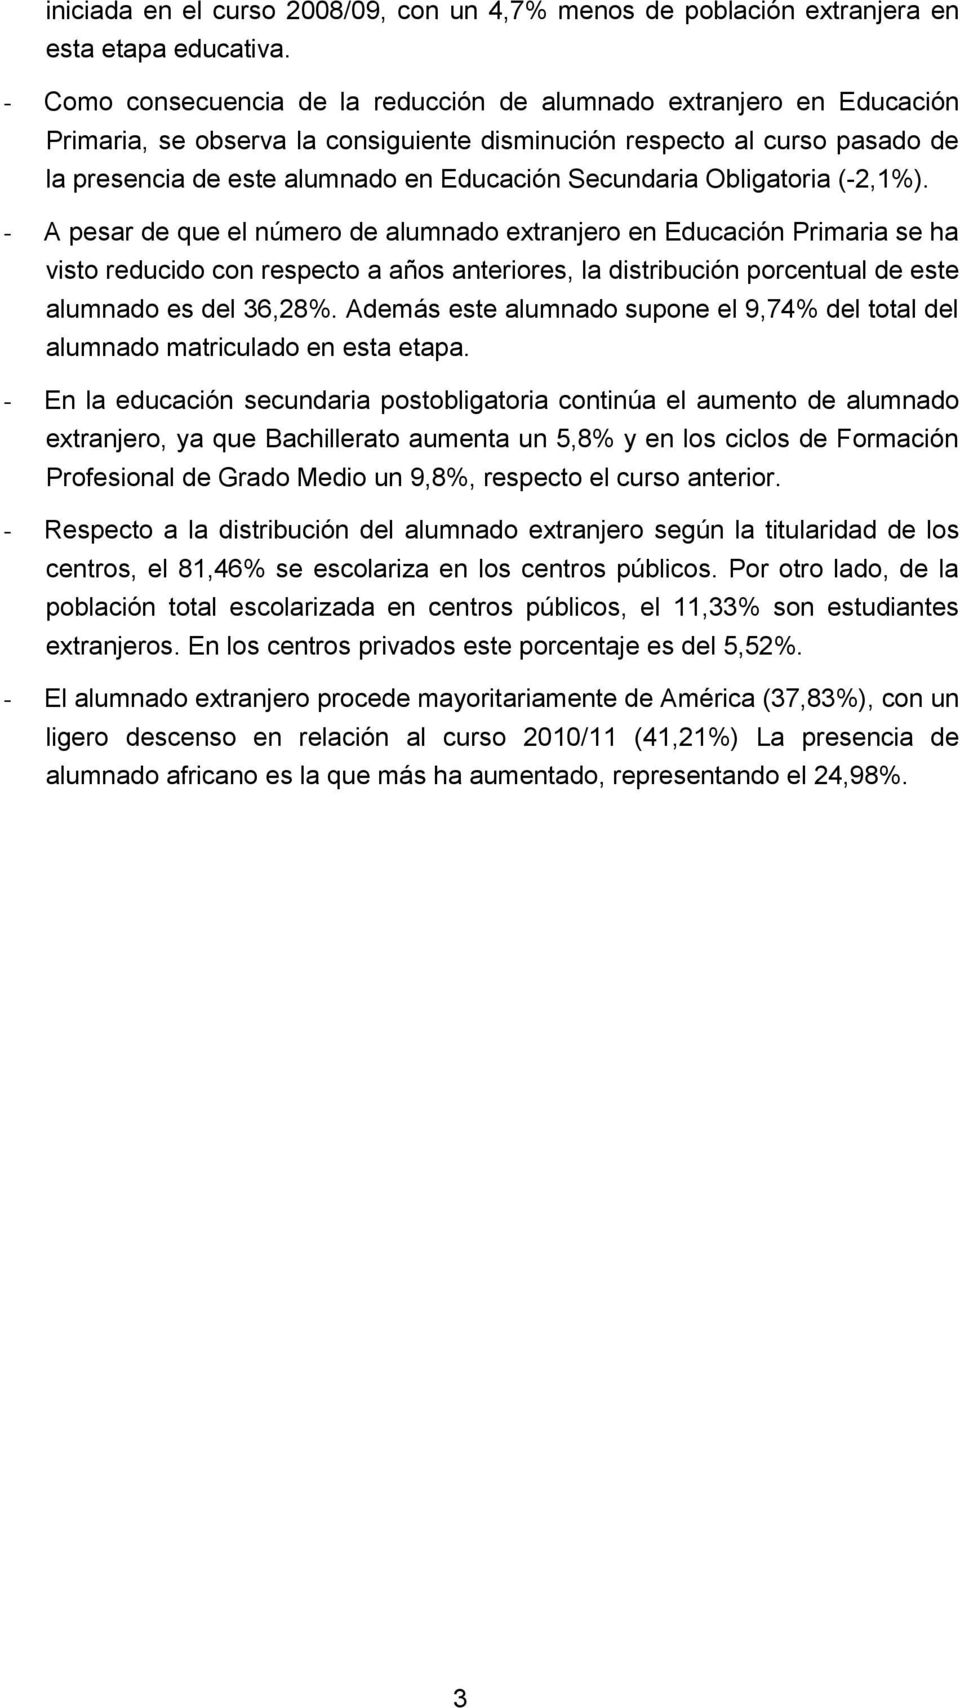 Secundaria Obligatoria (-2,1%).